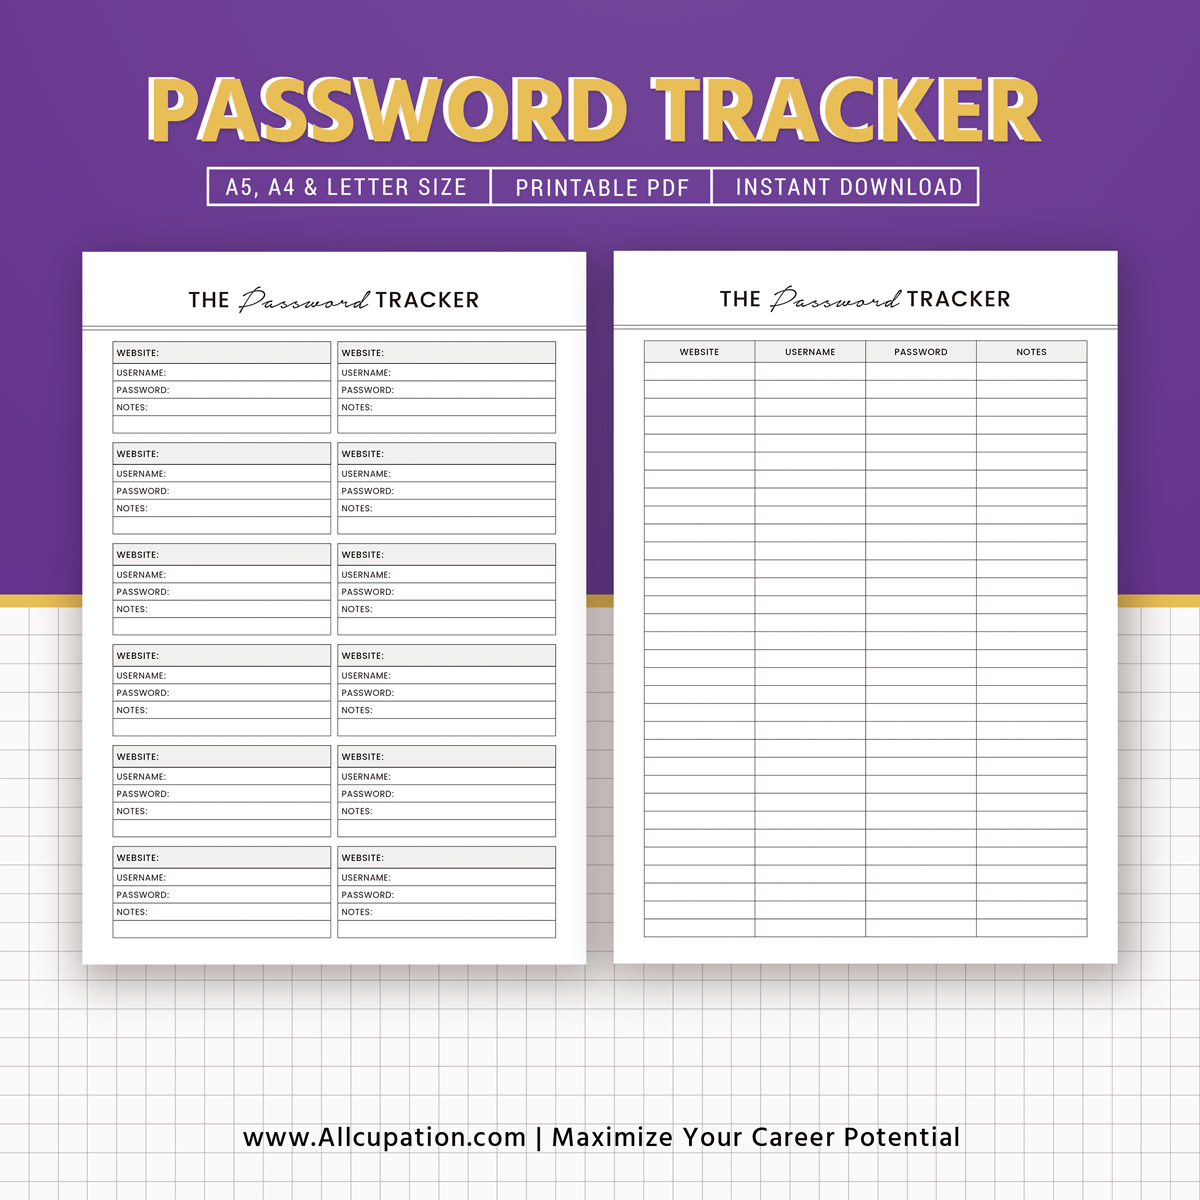 Candid image with password tracker